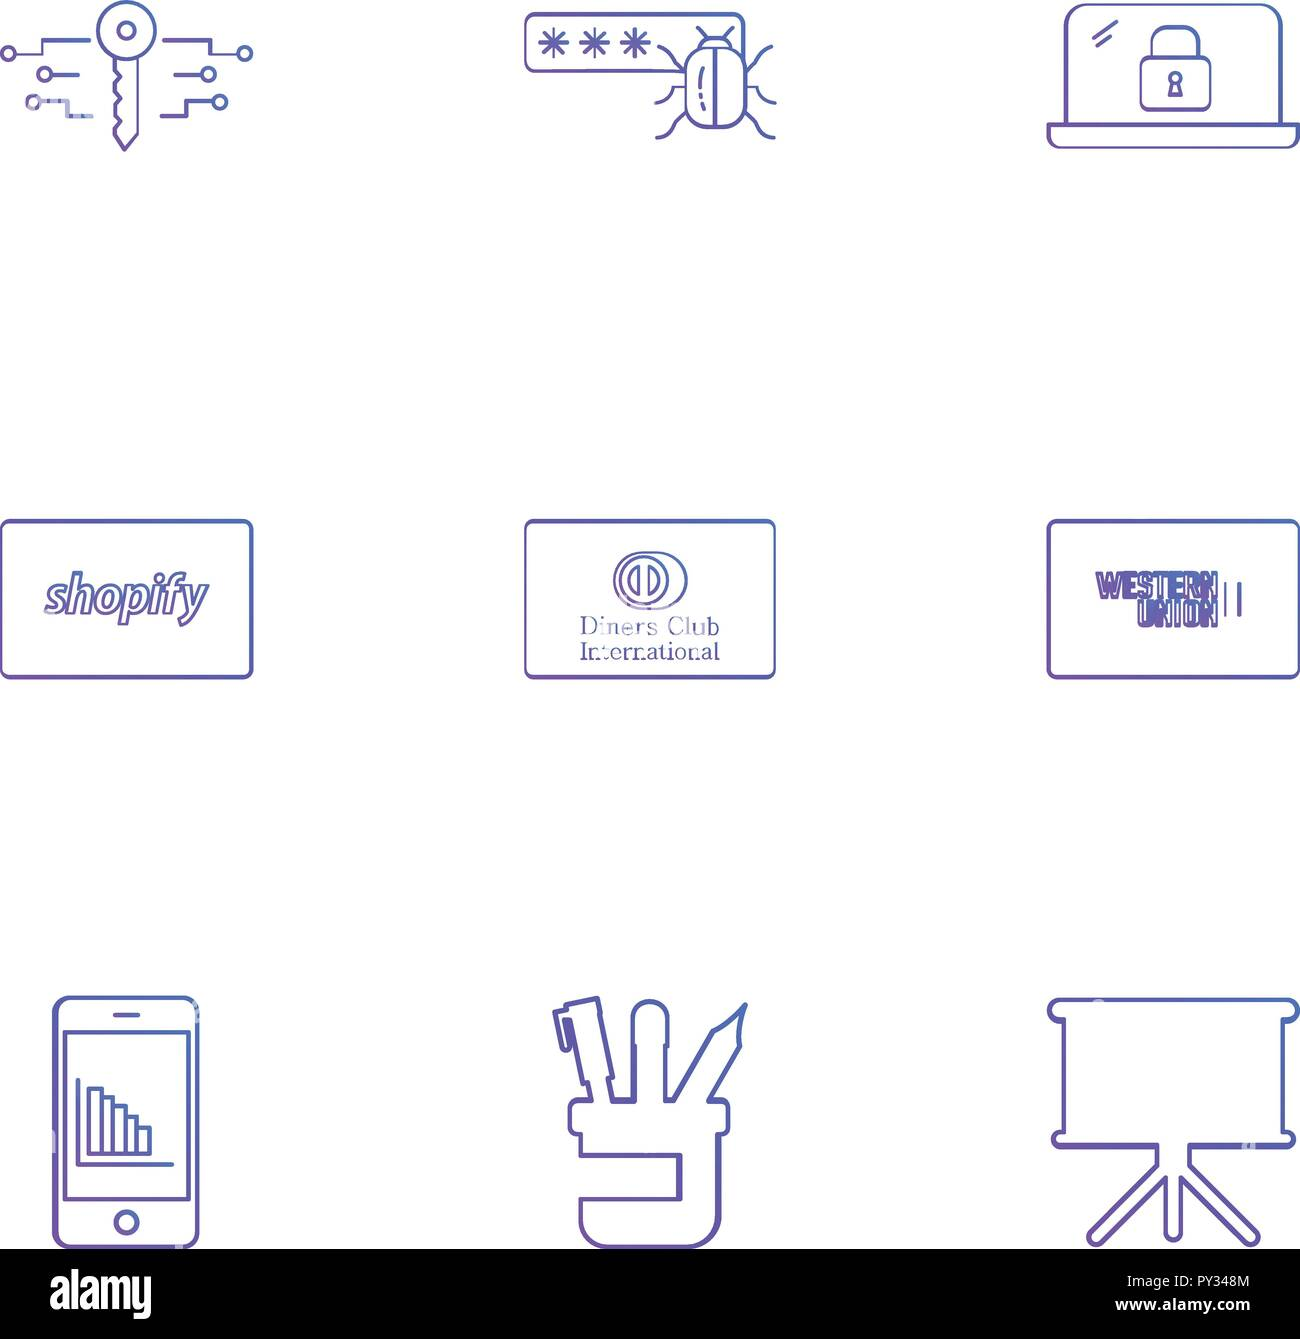 hight resolution of key password bug lock shopify club card western union mobile pen board icon vector design flat collection style creative ic